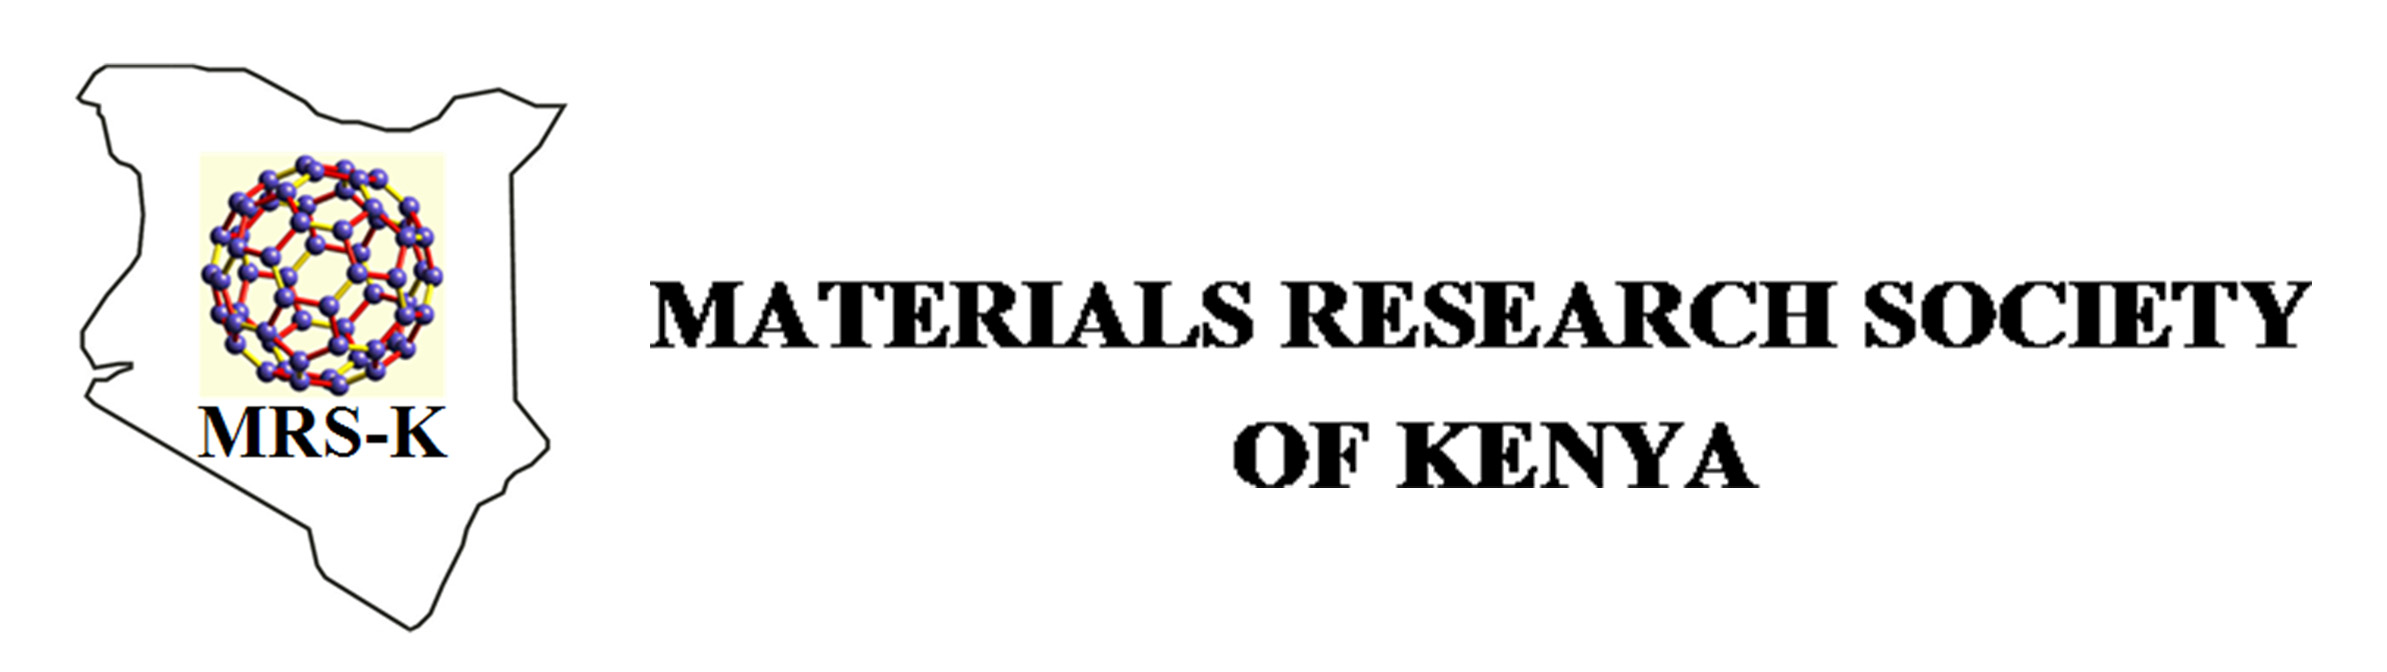 The Materials Research Society of Kenya